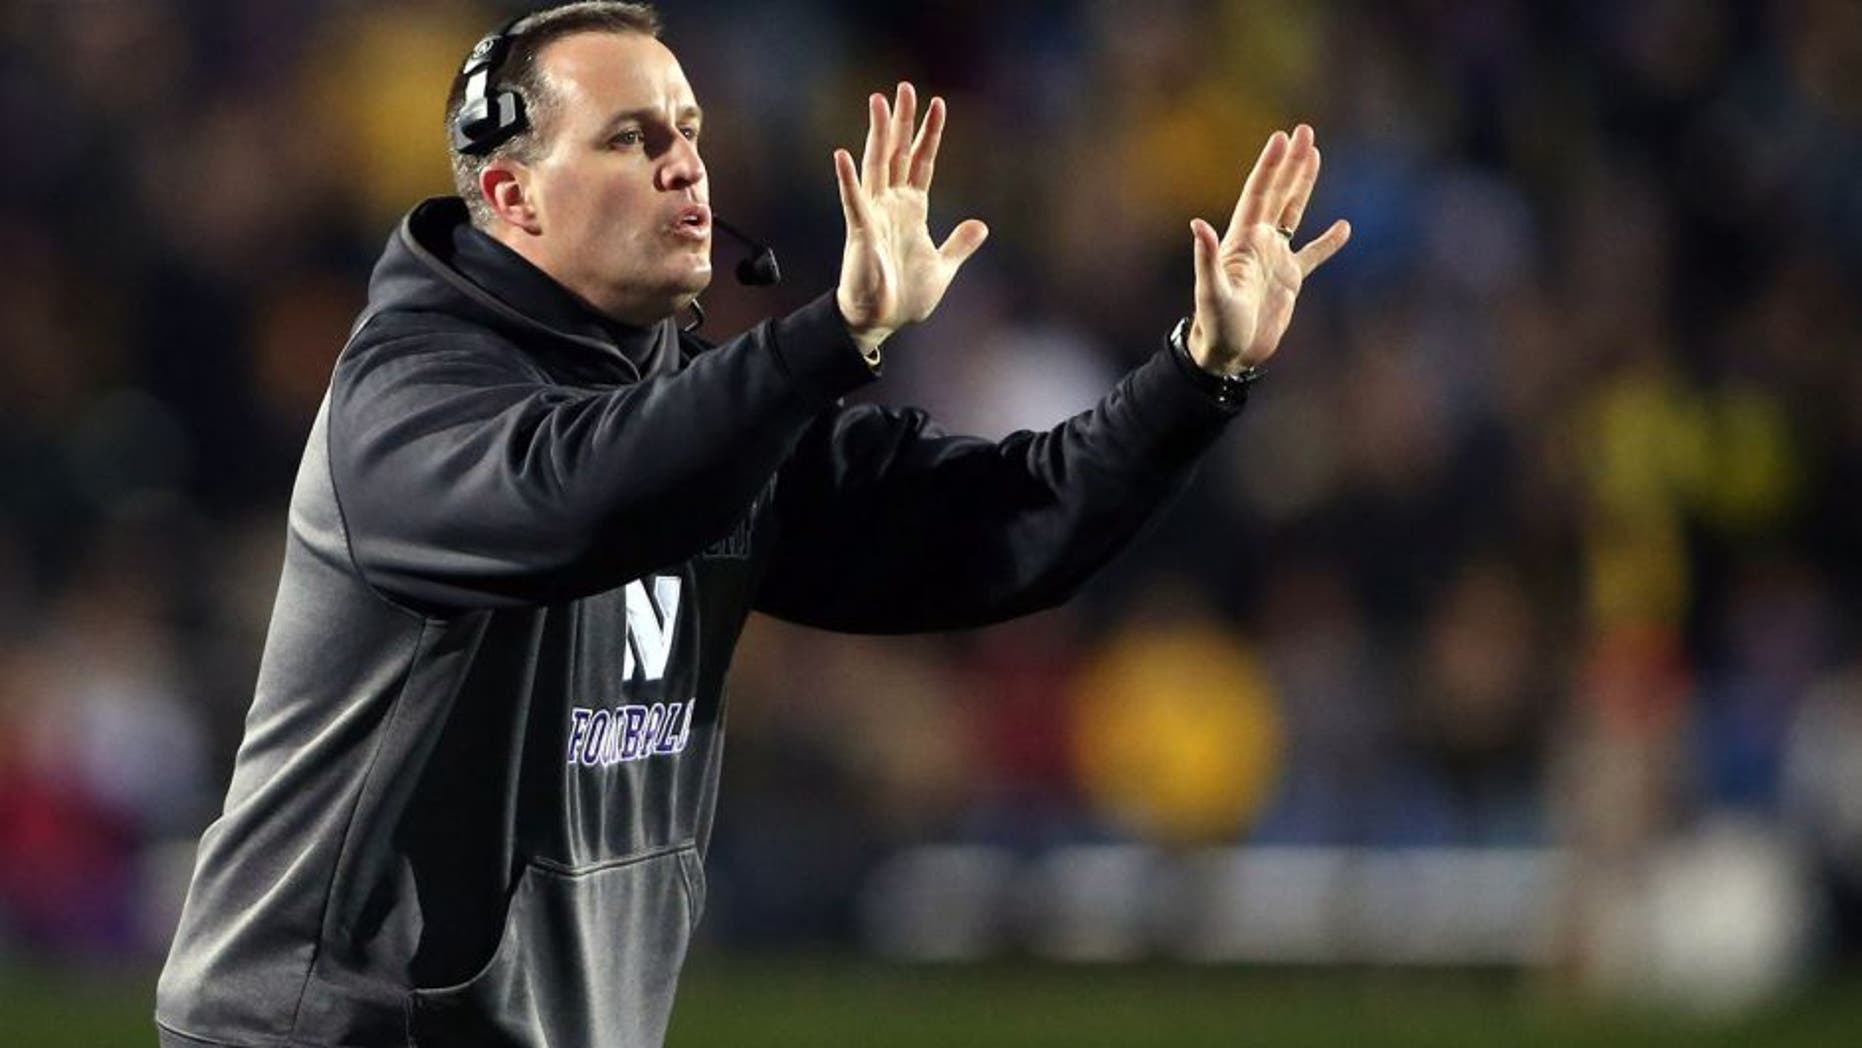 Nov 8, 2014; Evanston, IL, USA; Northwestern Wildcats head coach Pat Fitzgerald gestures to his team in the fourth quarter against the Michigan Wolverines at Ryan Field. Mandatory Credit: Jerry Lai-USA TODAY Sports